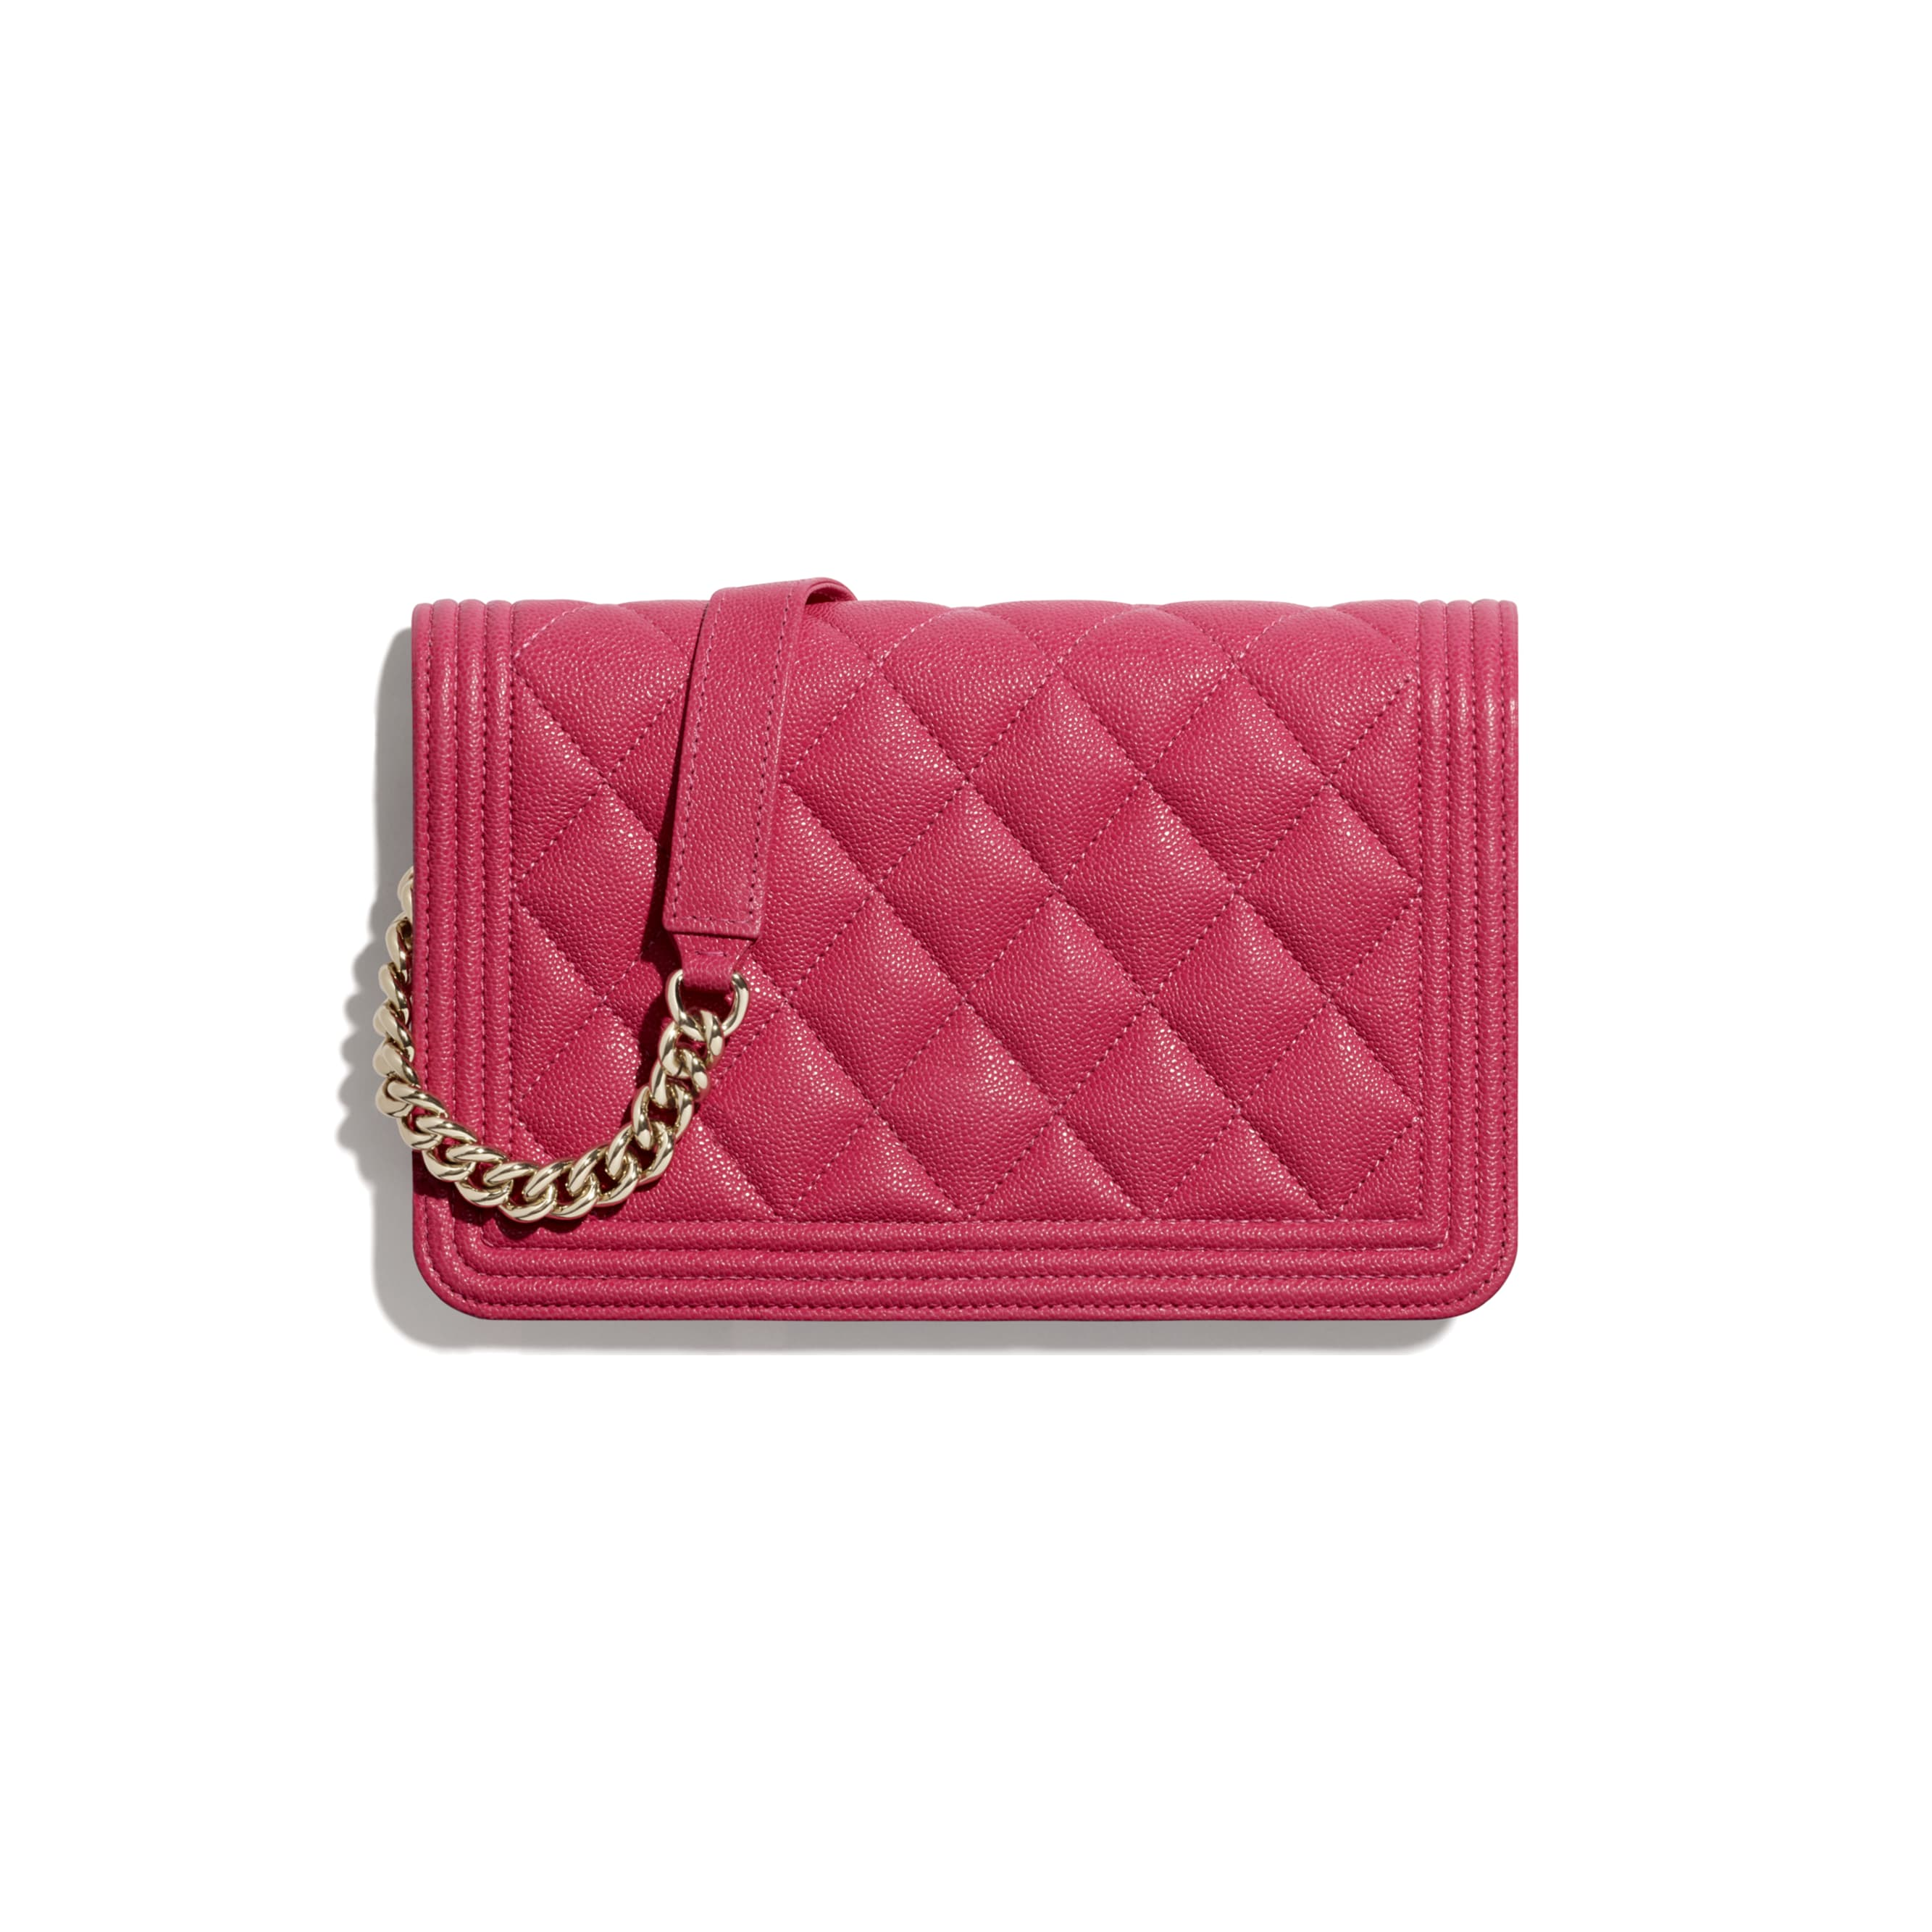 BOY CHANEL Wallet On Chain - Pink - Grained Calfskin & Gold-Tone Metal - CHANEL - Alternative view - see standard sized version